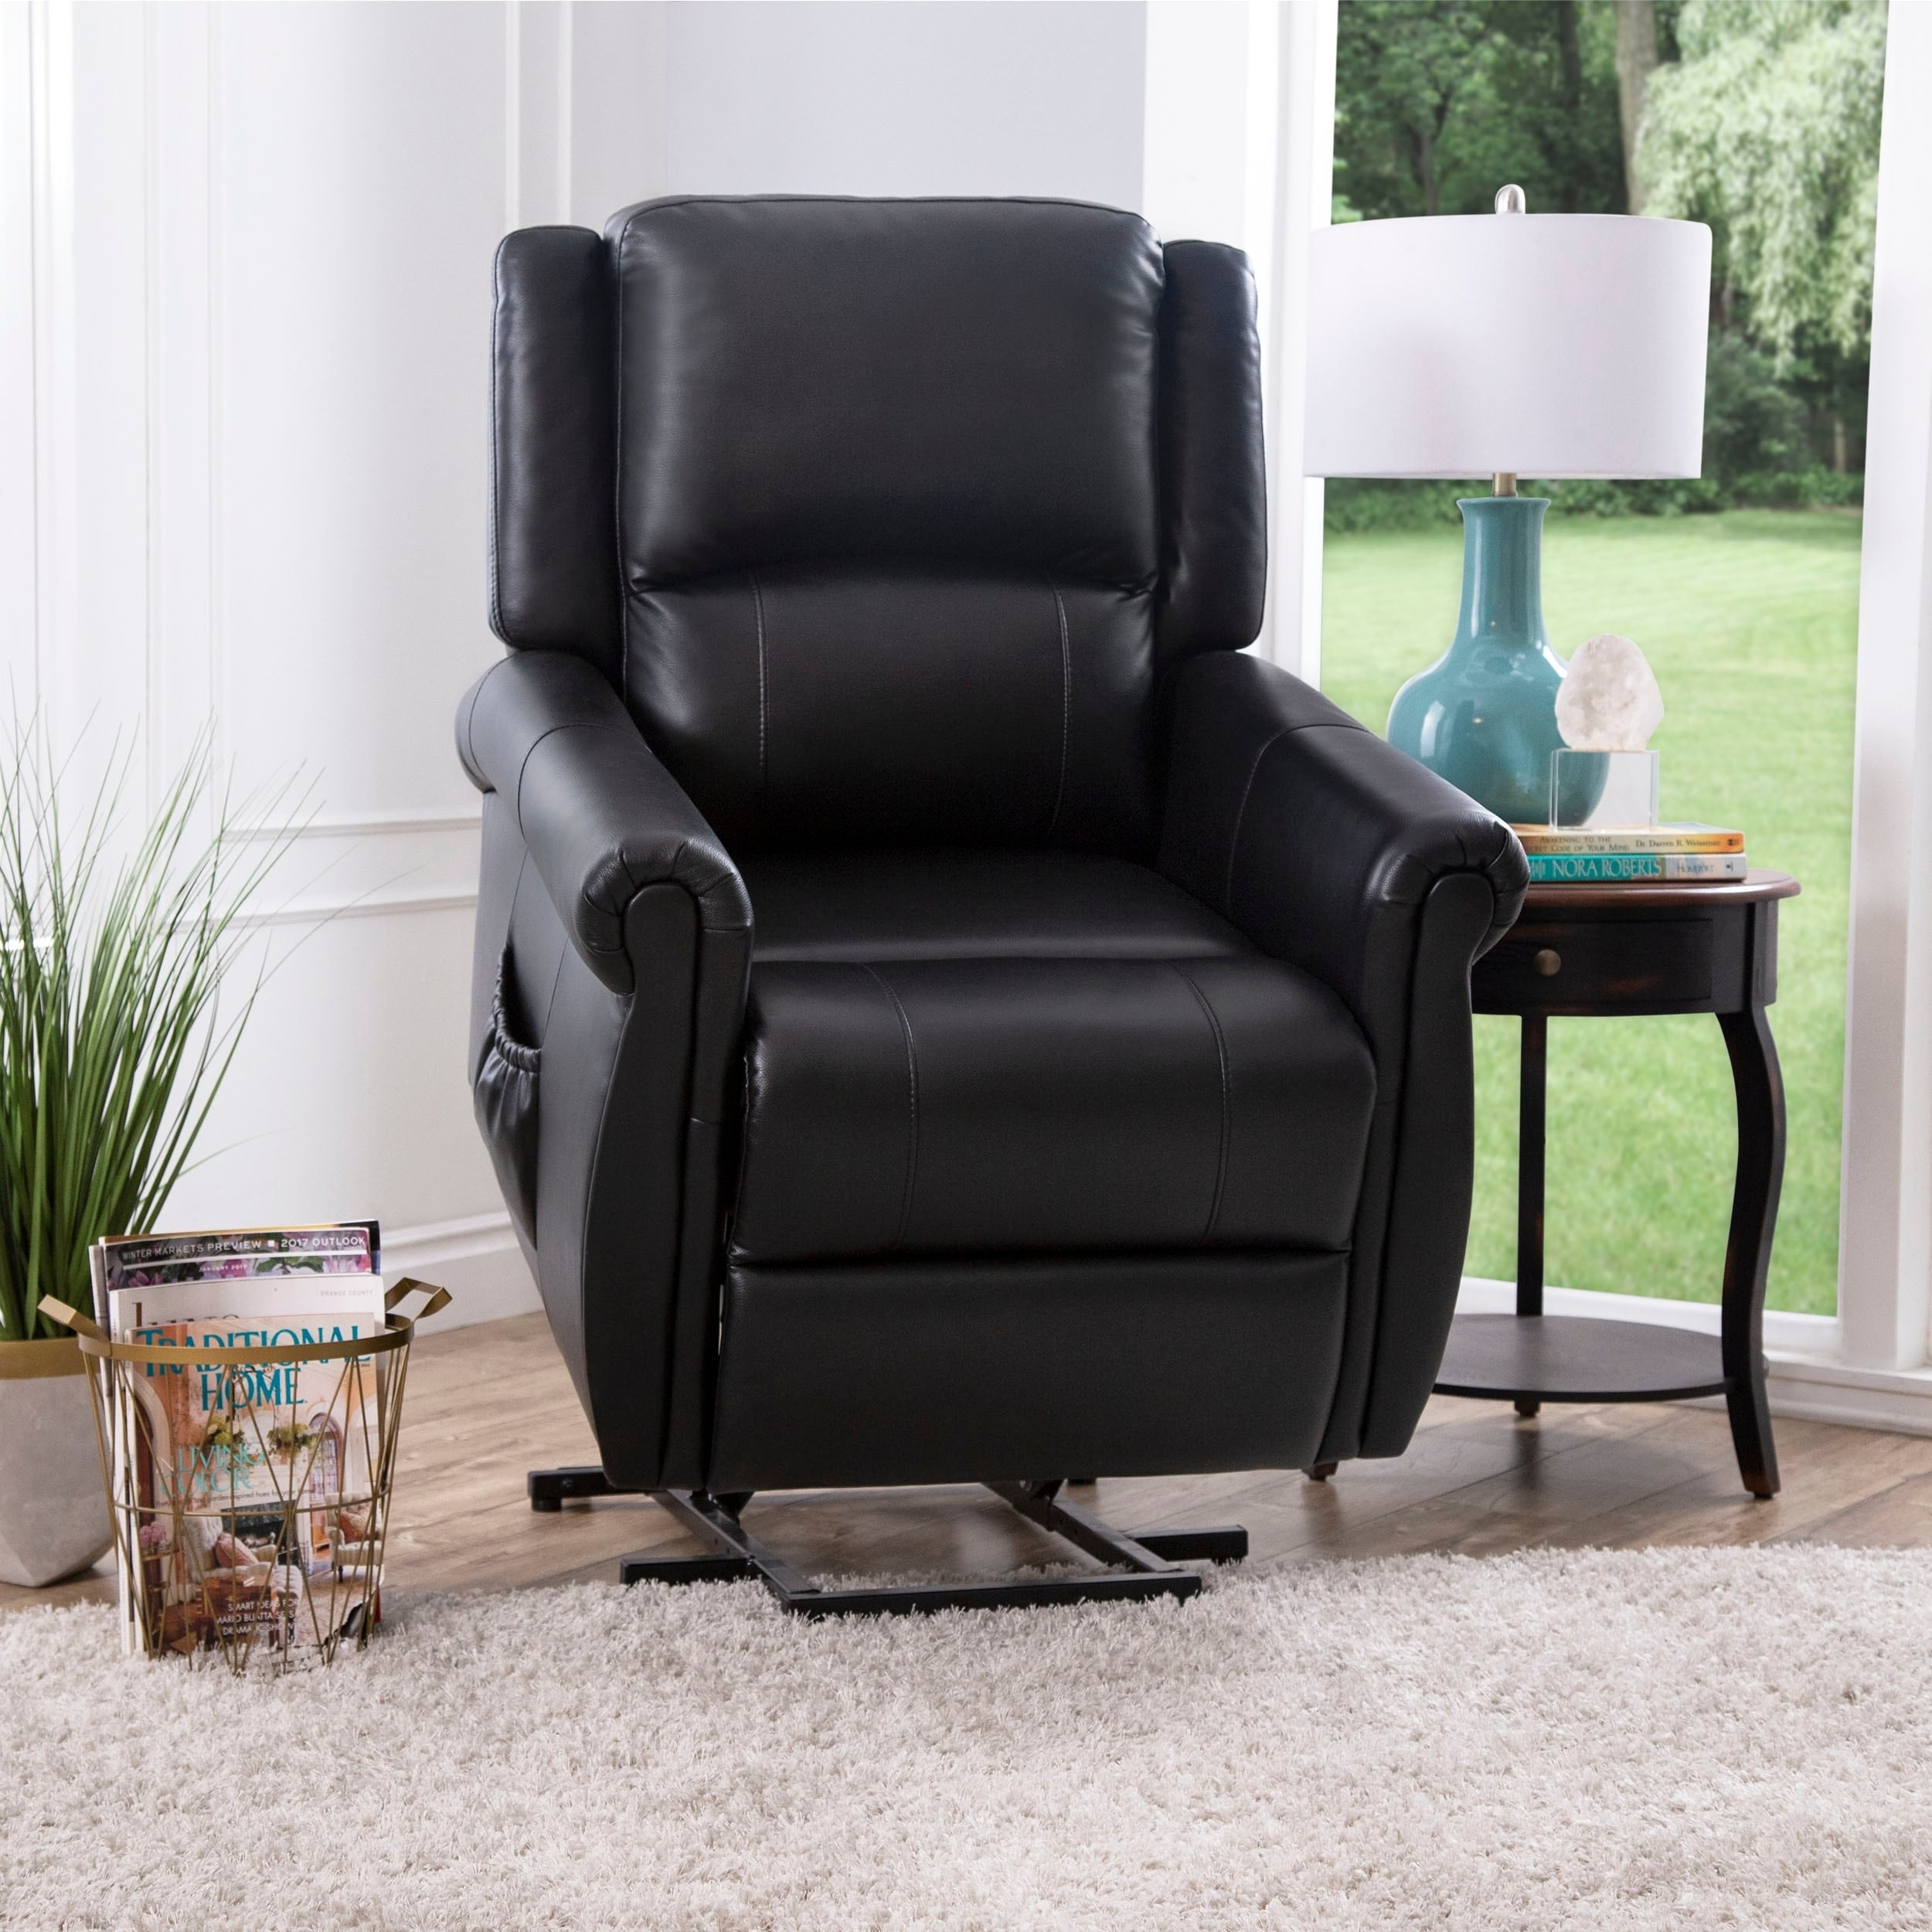 Best Rated Small Recliners Buy Leather Recliner Chairs Rocking Recliners Online At